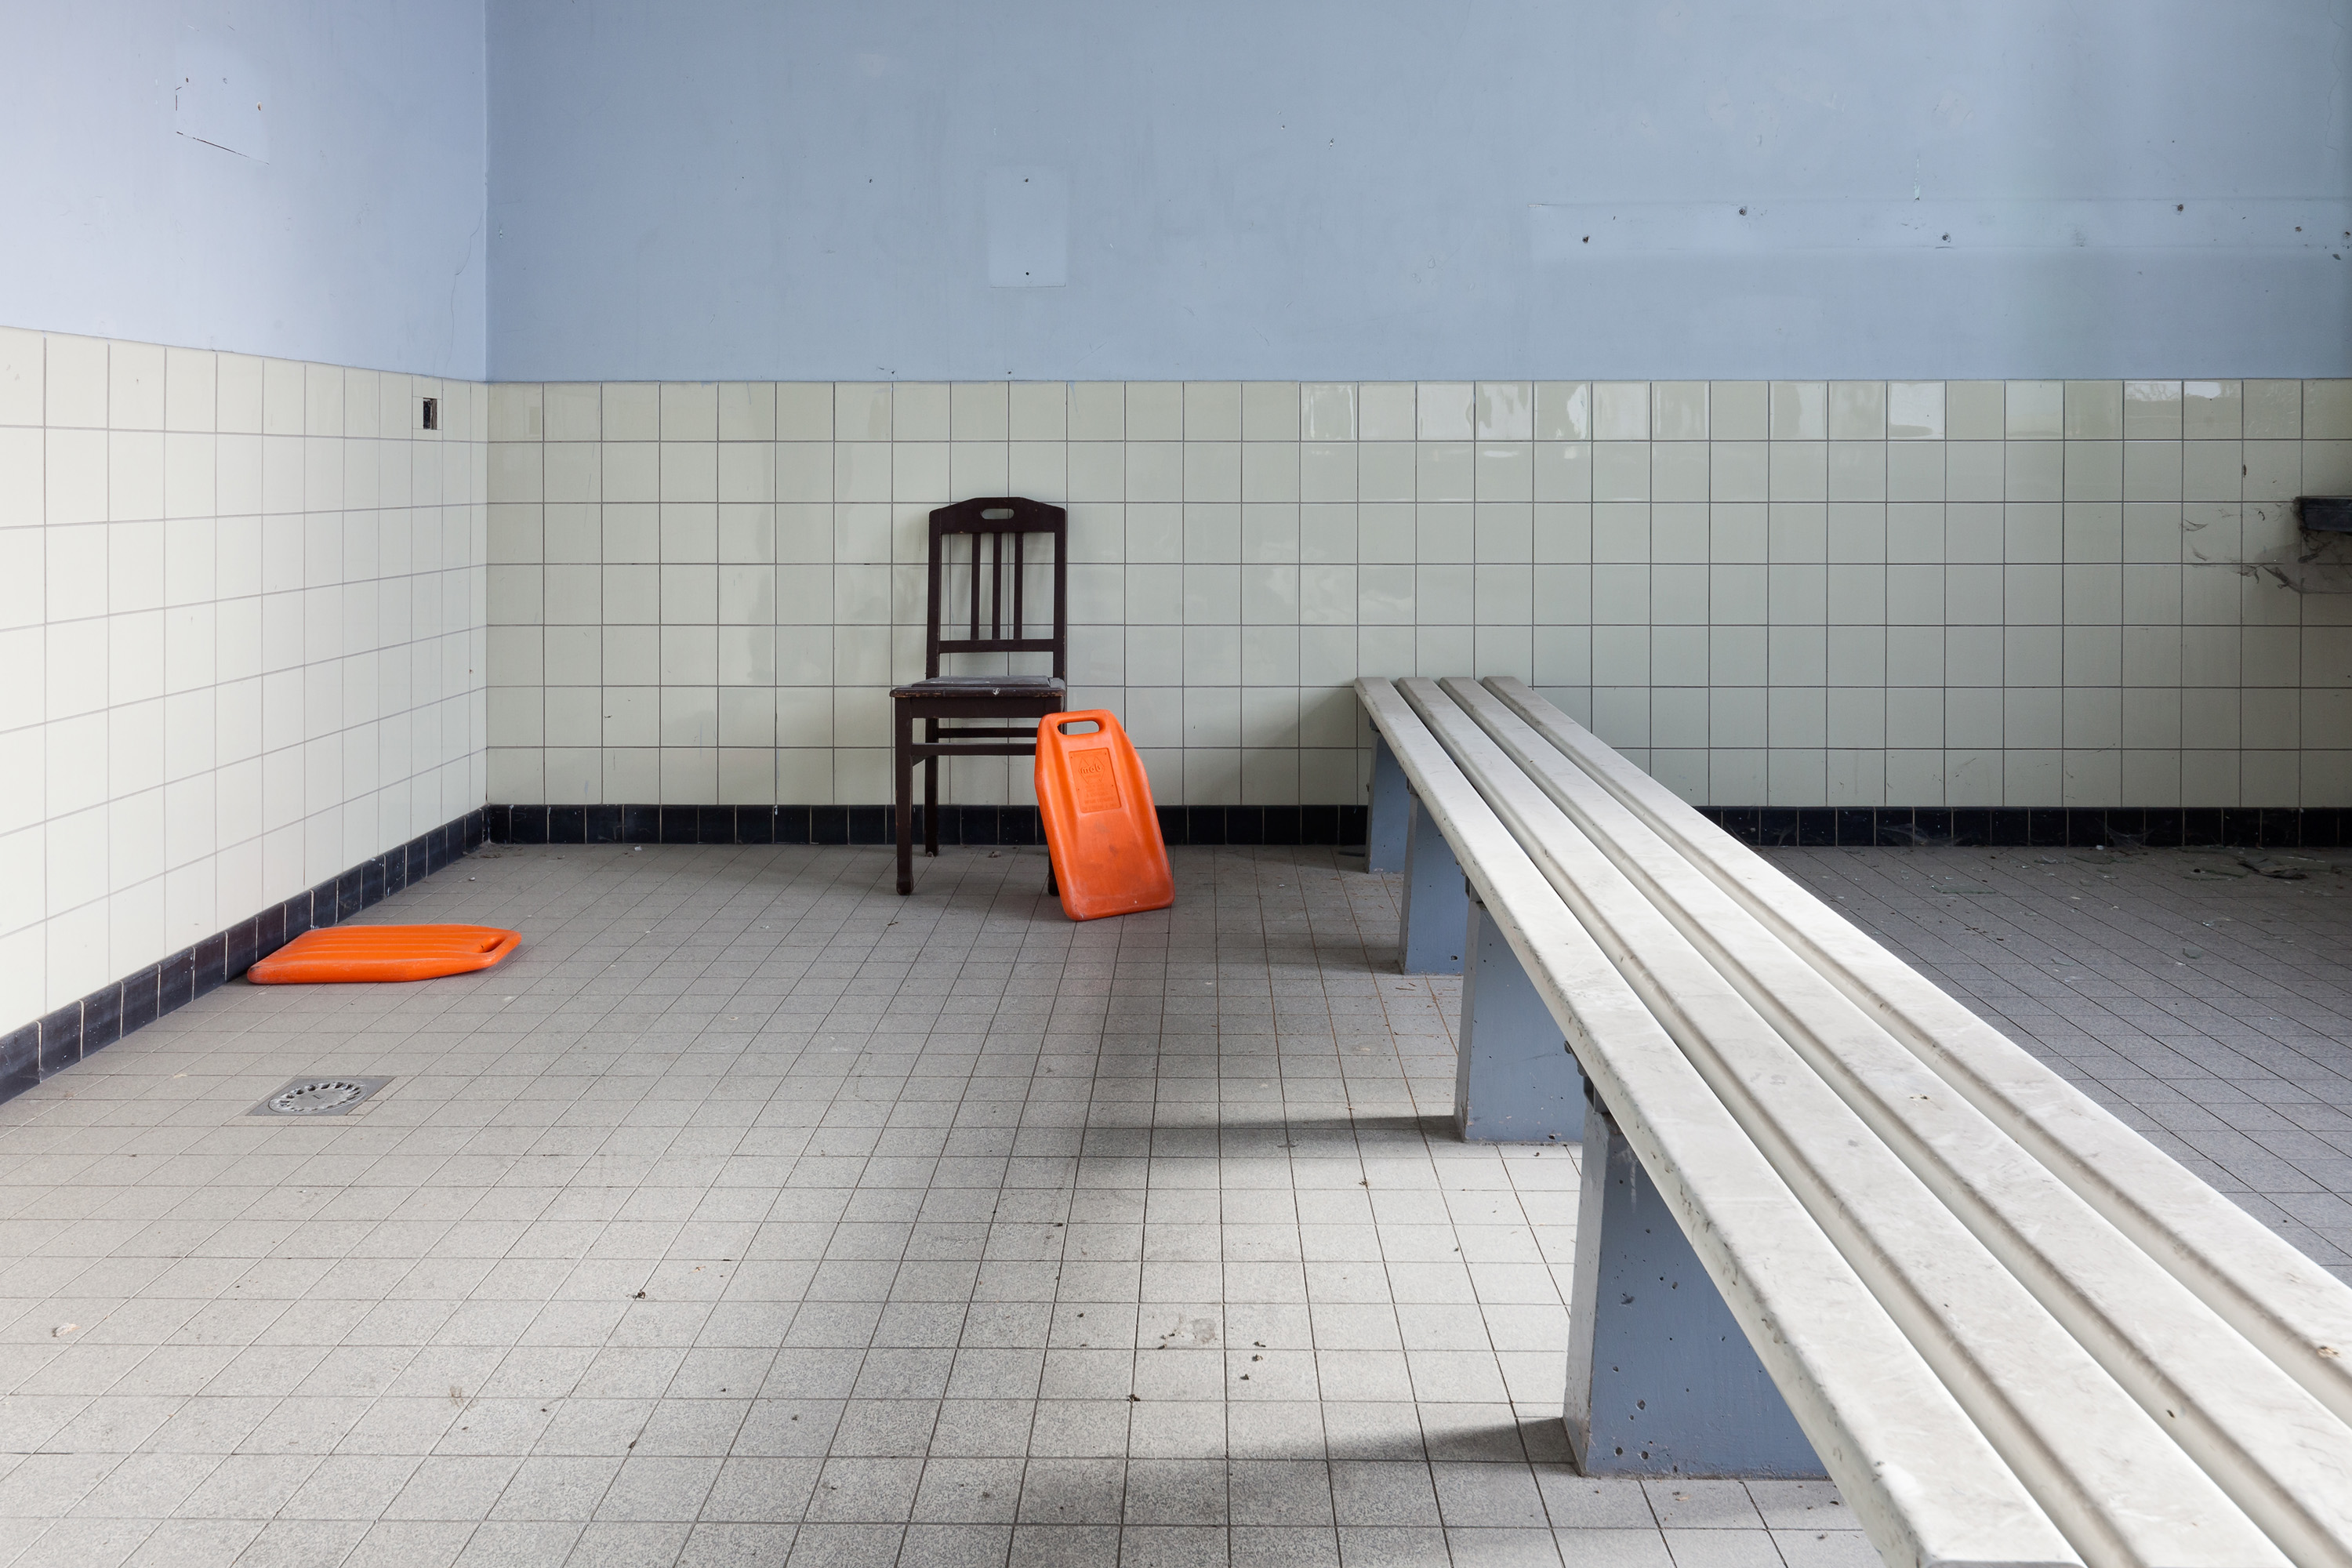 photo by Bert Vereecke for photoseries Please, be seated.